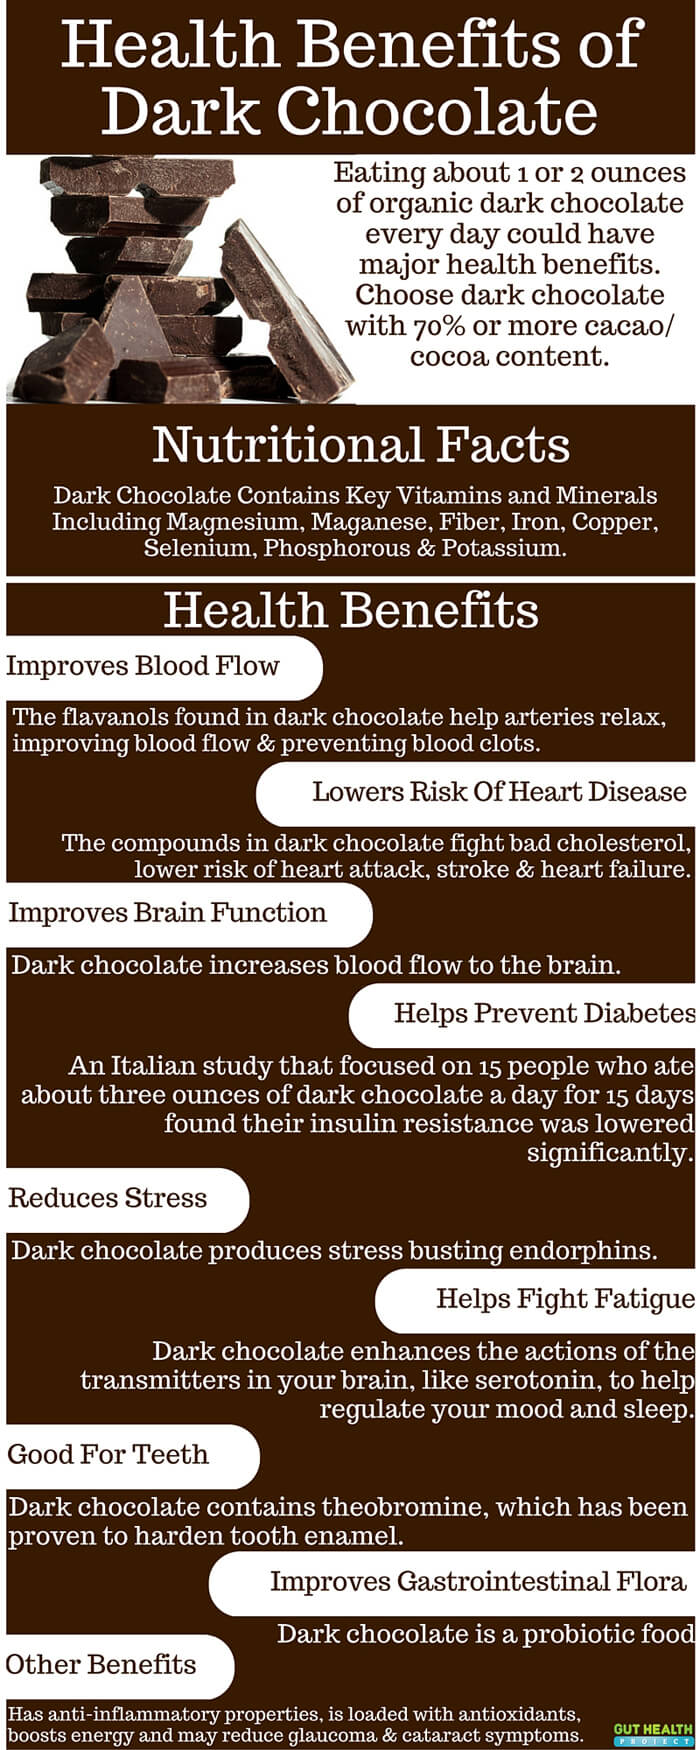 Dark Chocolate: A Probiotic Food With Impressive Health Benefits